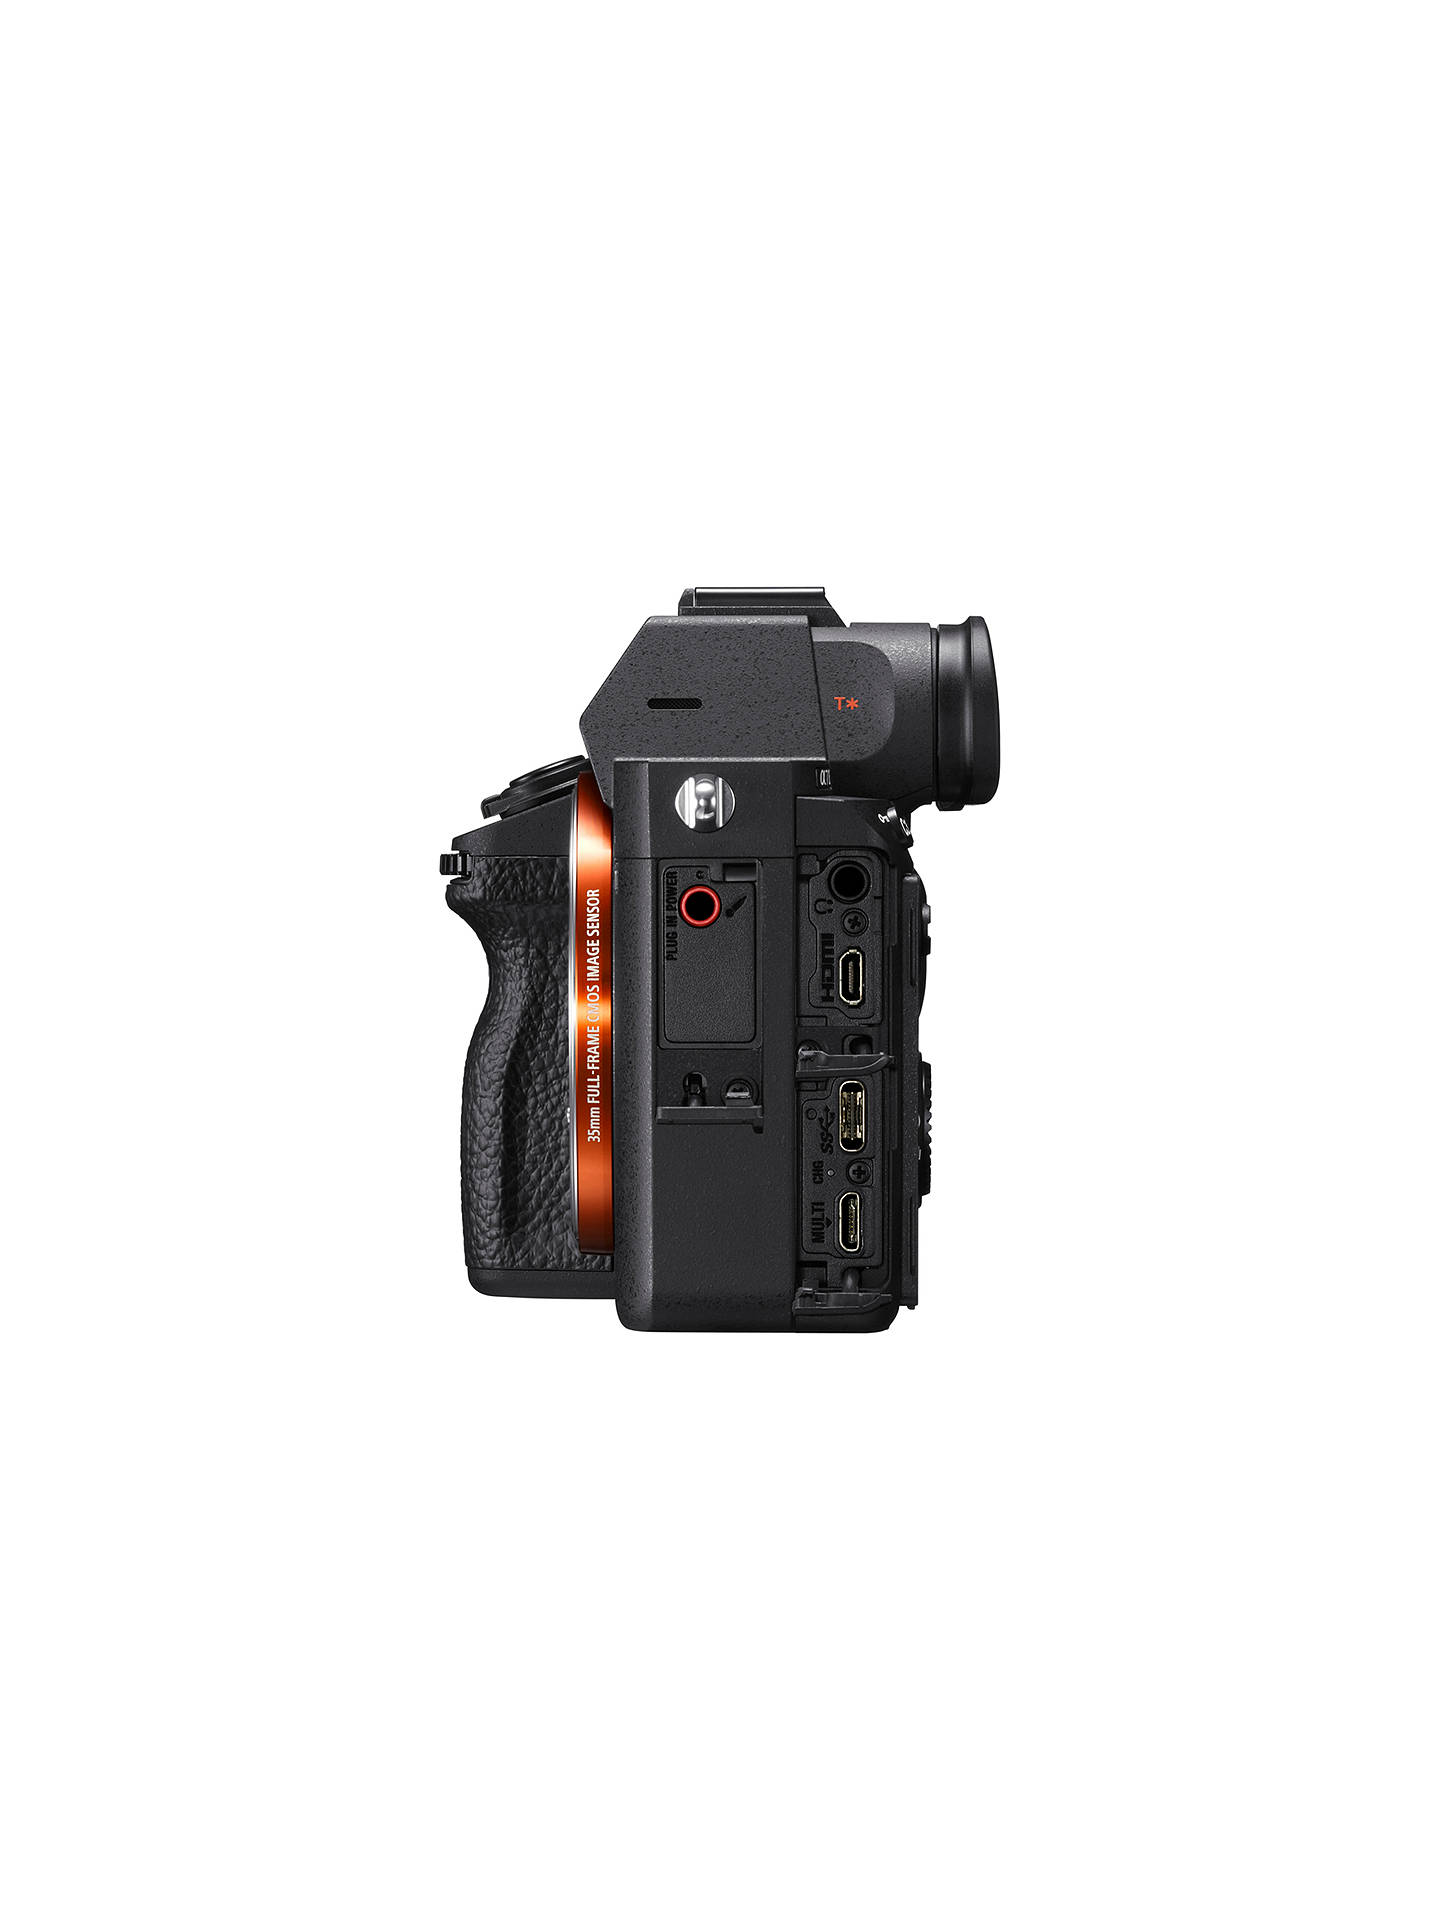 Sony a7 III (Alpha ILCE-7M3) Compact System Camera with 28-70mm Zoom Lens,  4K Ultra HD, 24 2MP, Wi-Fi, Bluetooth, NFC, OLED EVF, 5-Axis Image